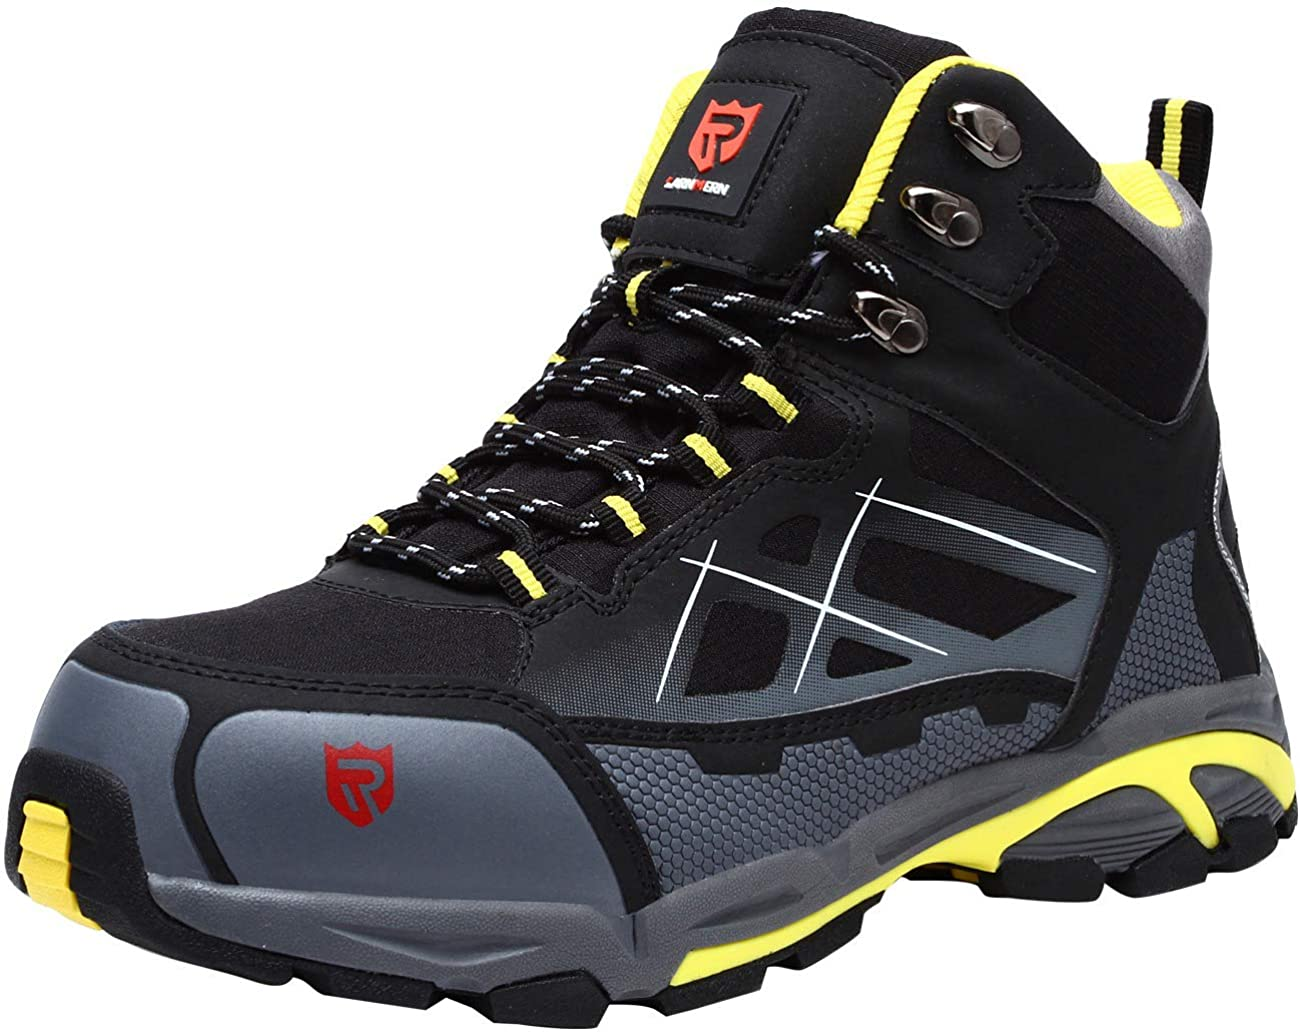 LARNMERN Steel Toe Safety Work Boots for Electricians is the most affordable choice.